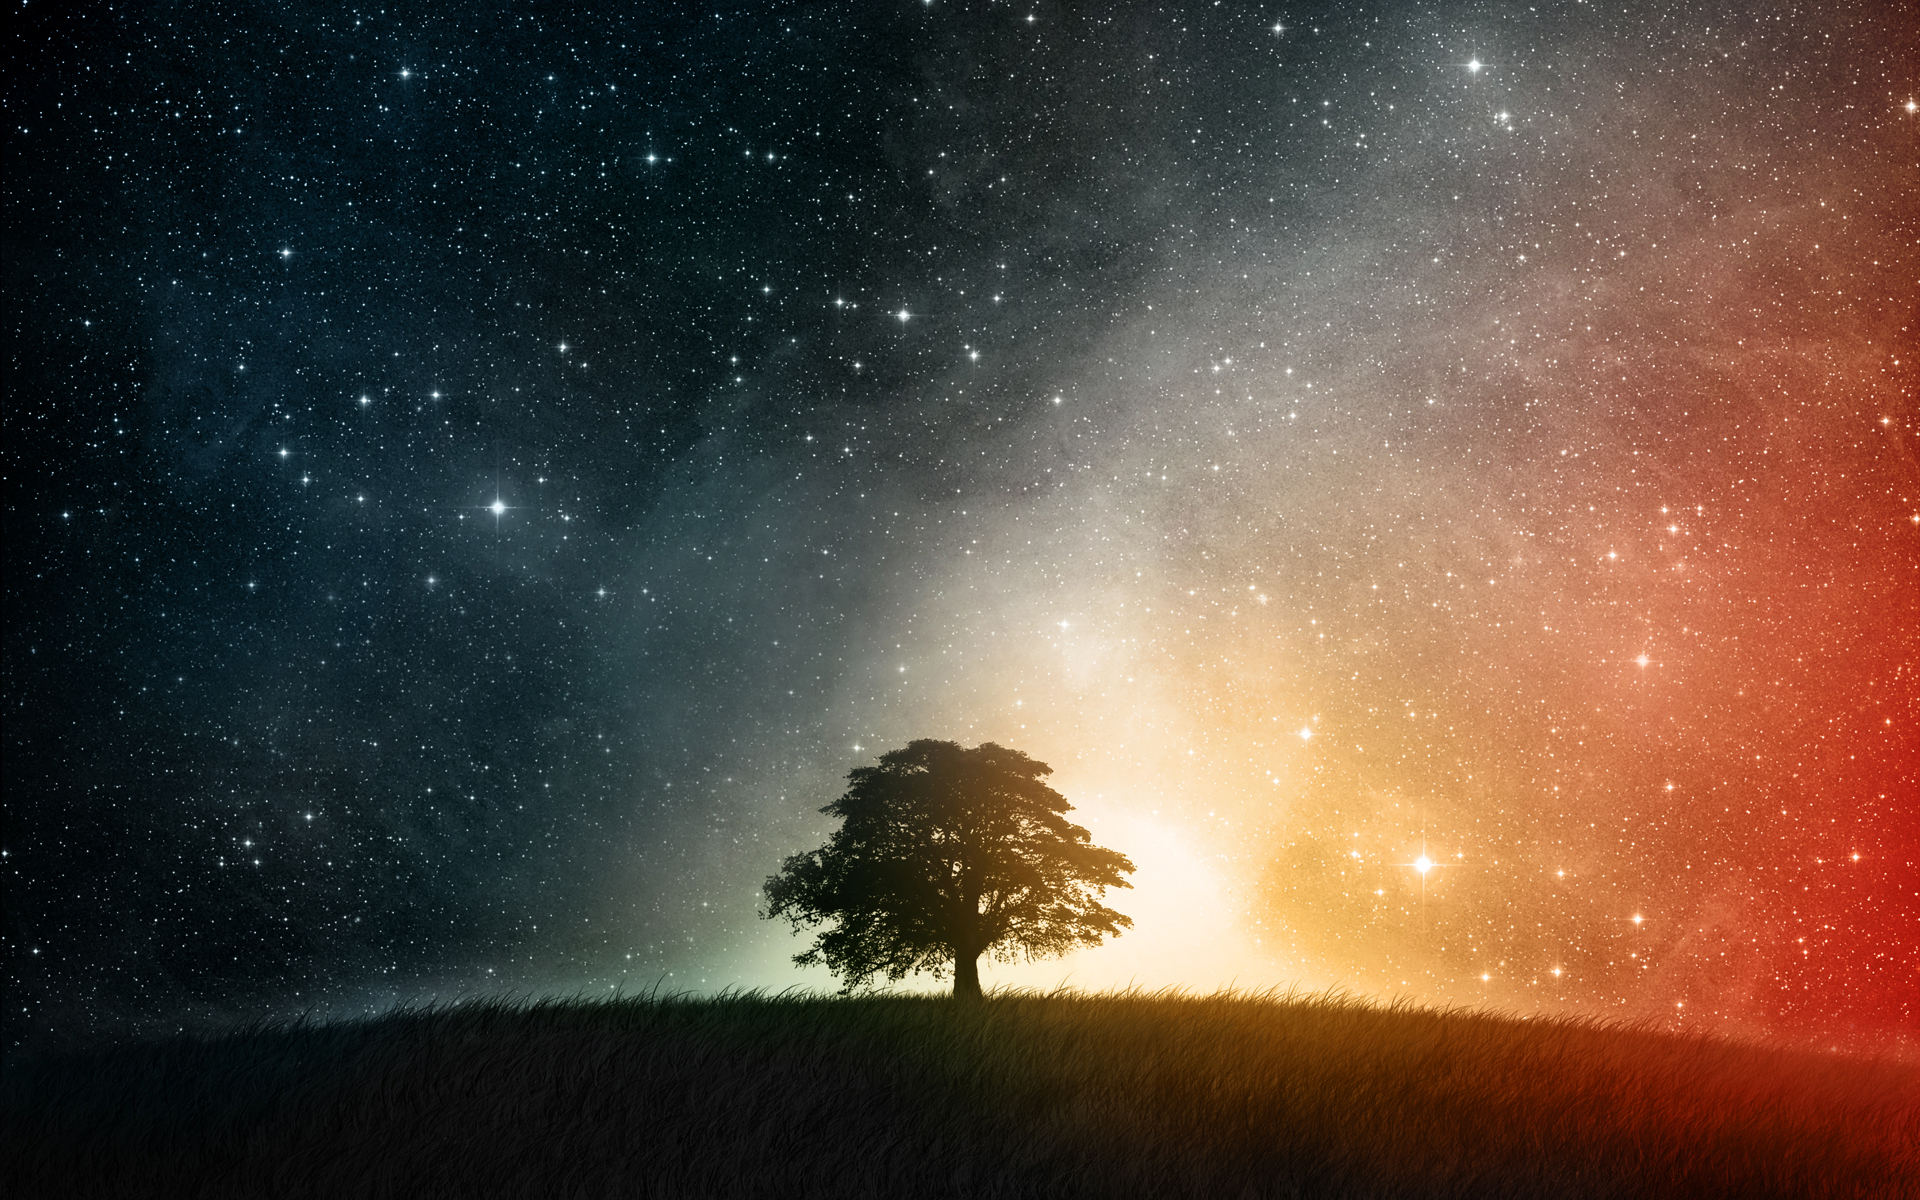 Earth - A Dreamy World  - Cgi - Landscape - Field - Grass - Sky - Light - Stars - Color - Tree - Cosmos - Space Wallpaper